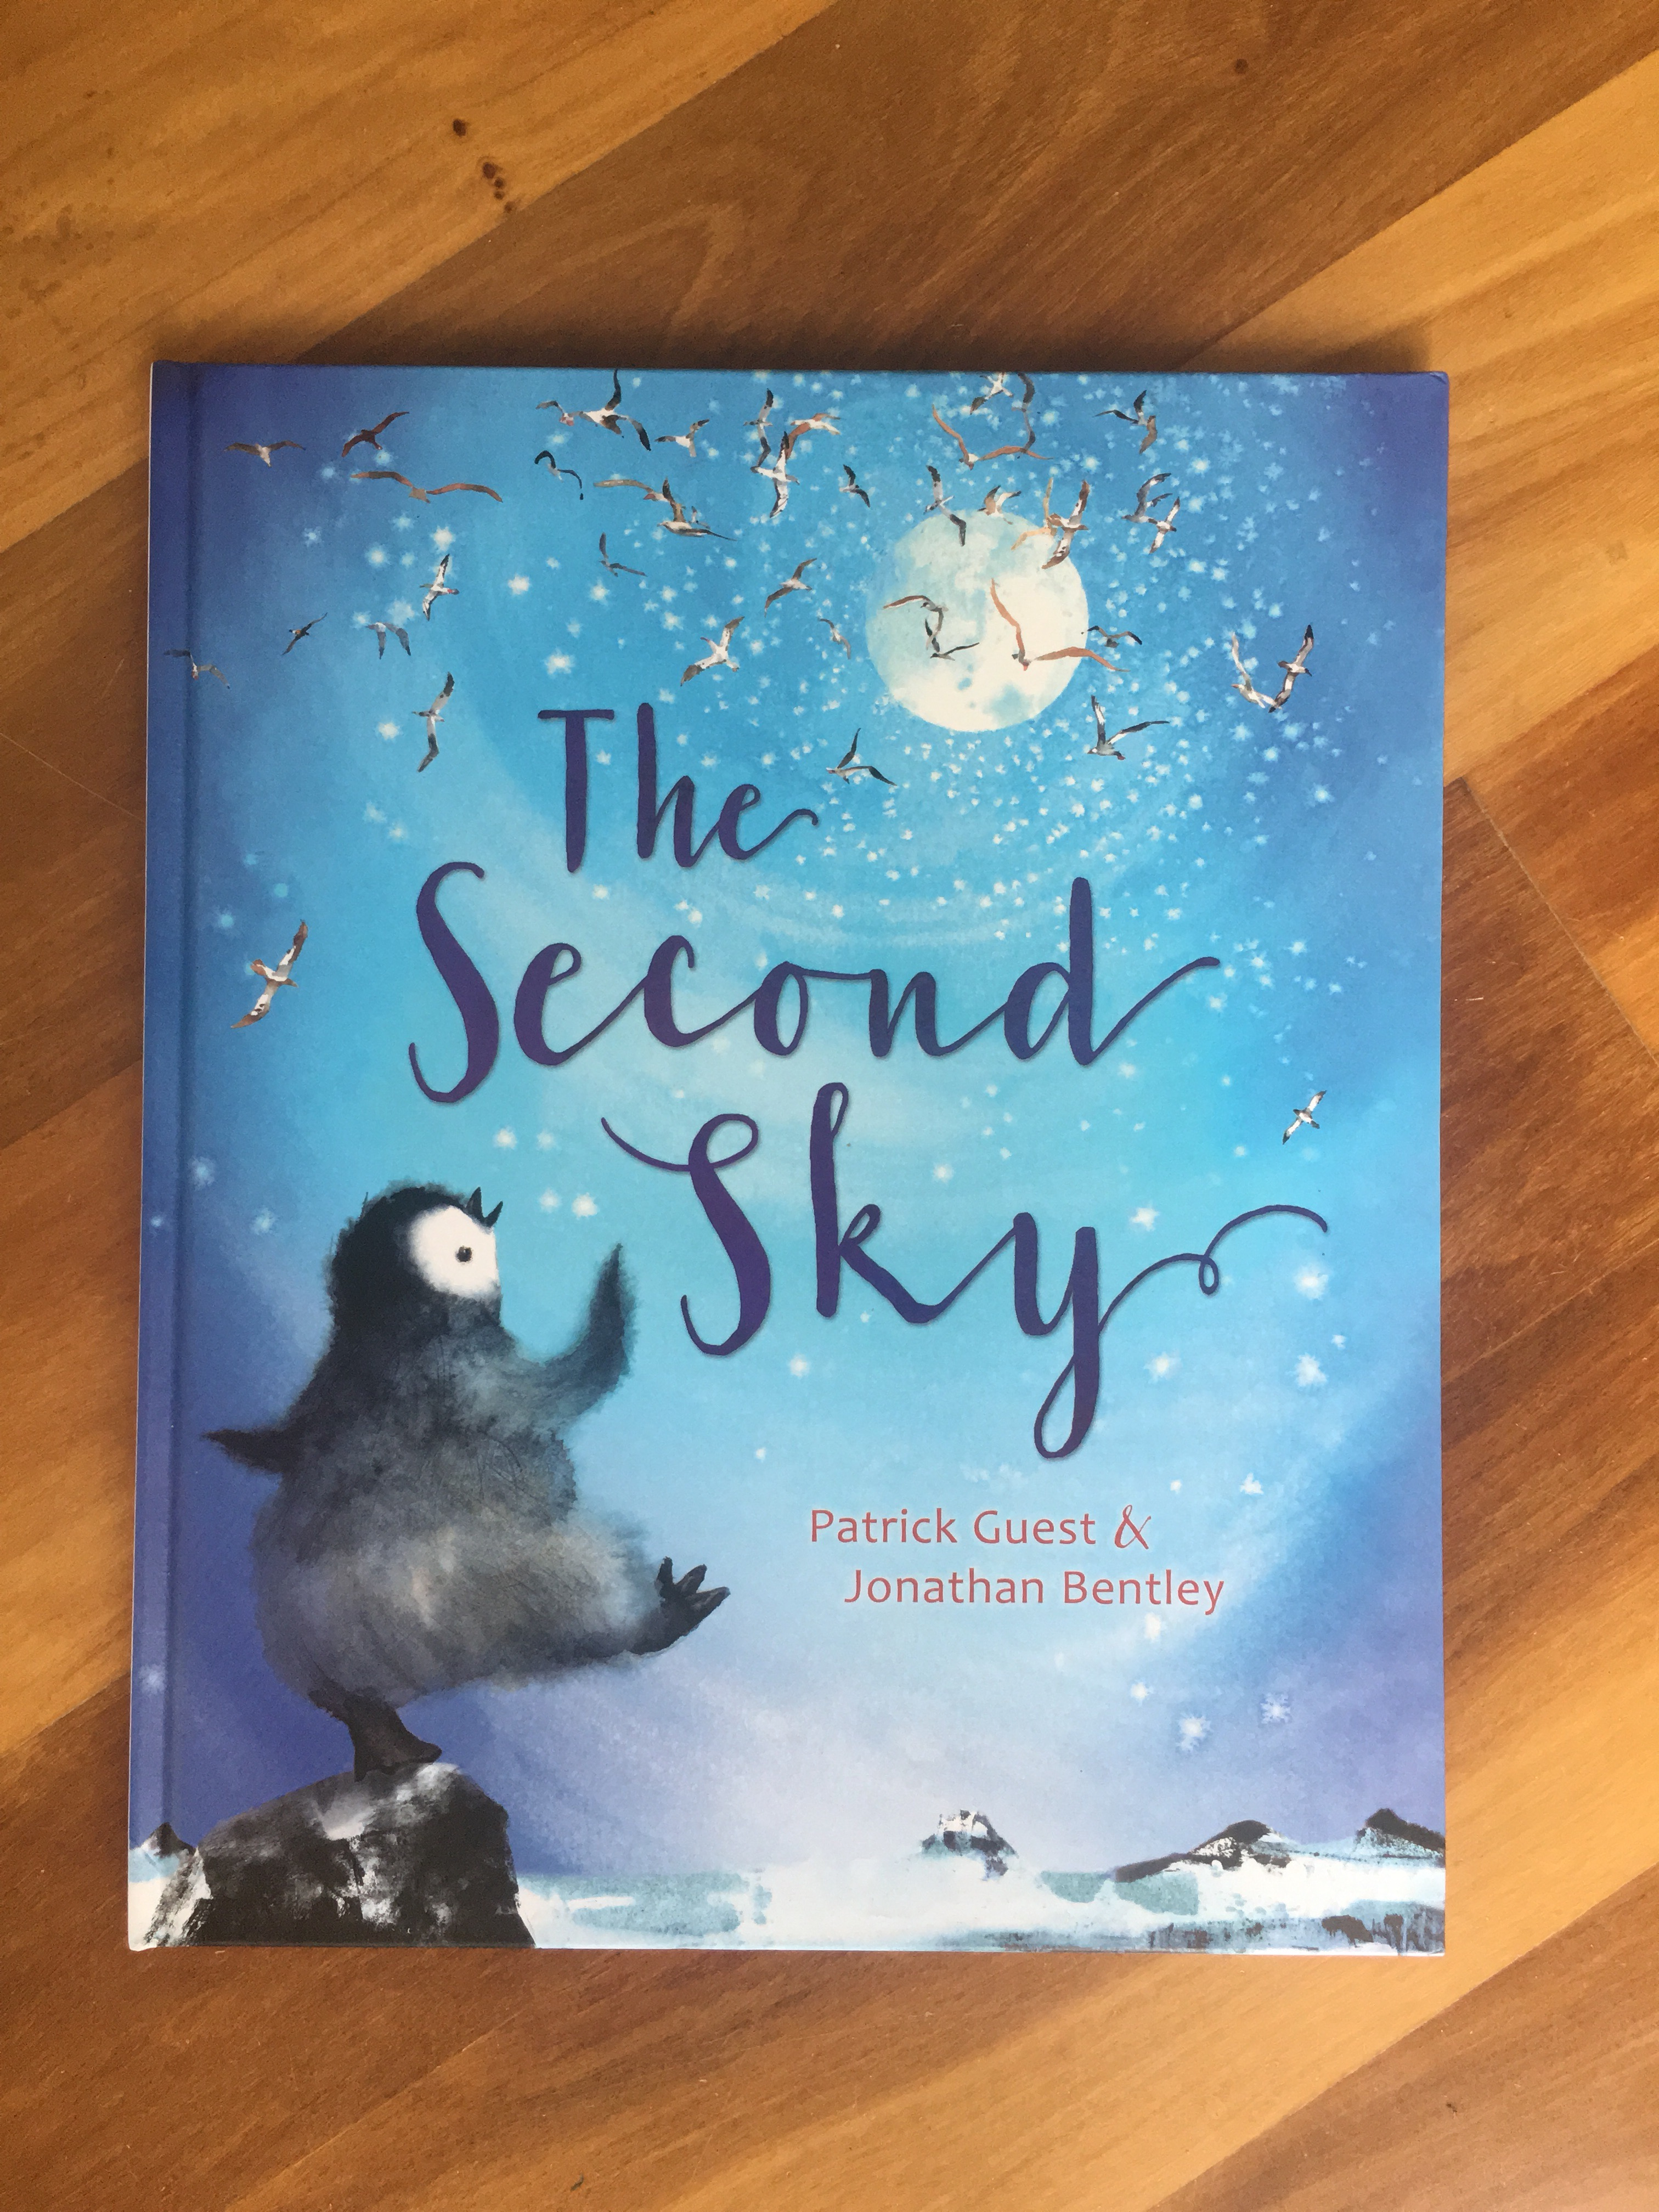 The second sky by Patrick Guest and Jonathon Bentley – Educate Empower